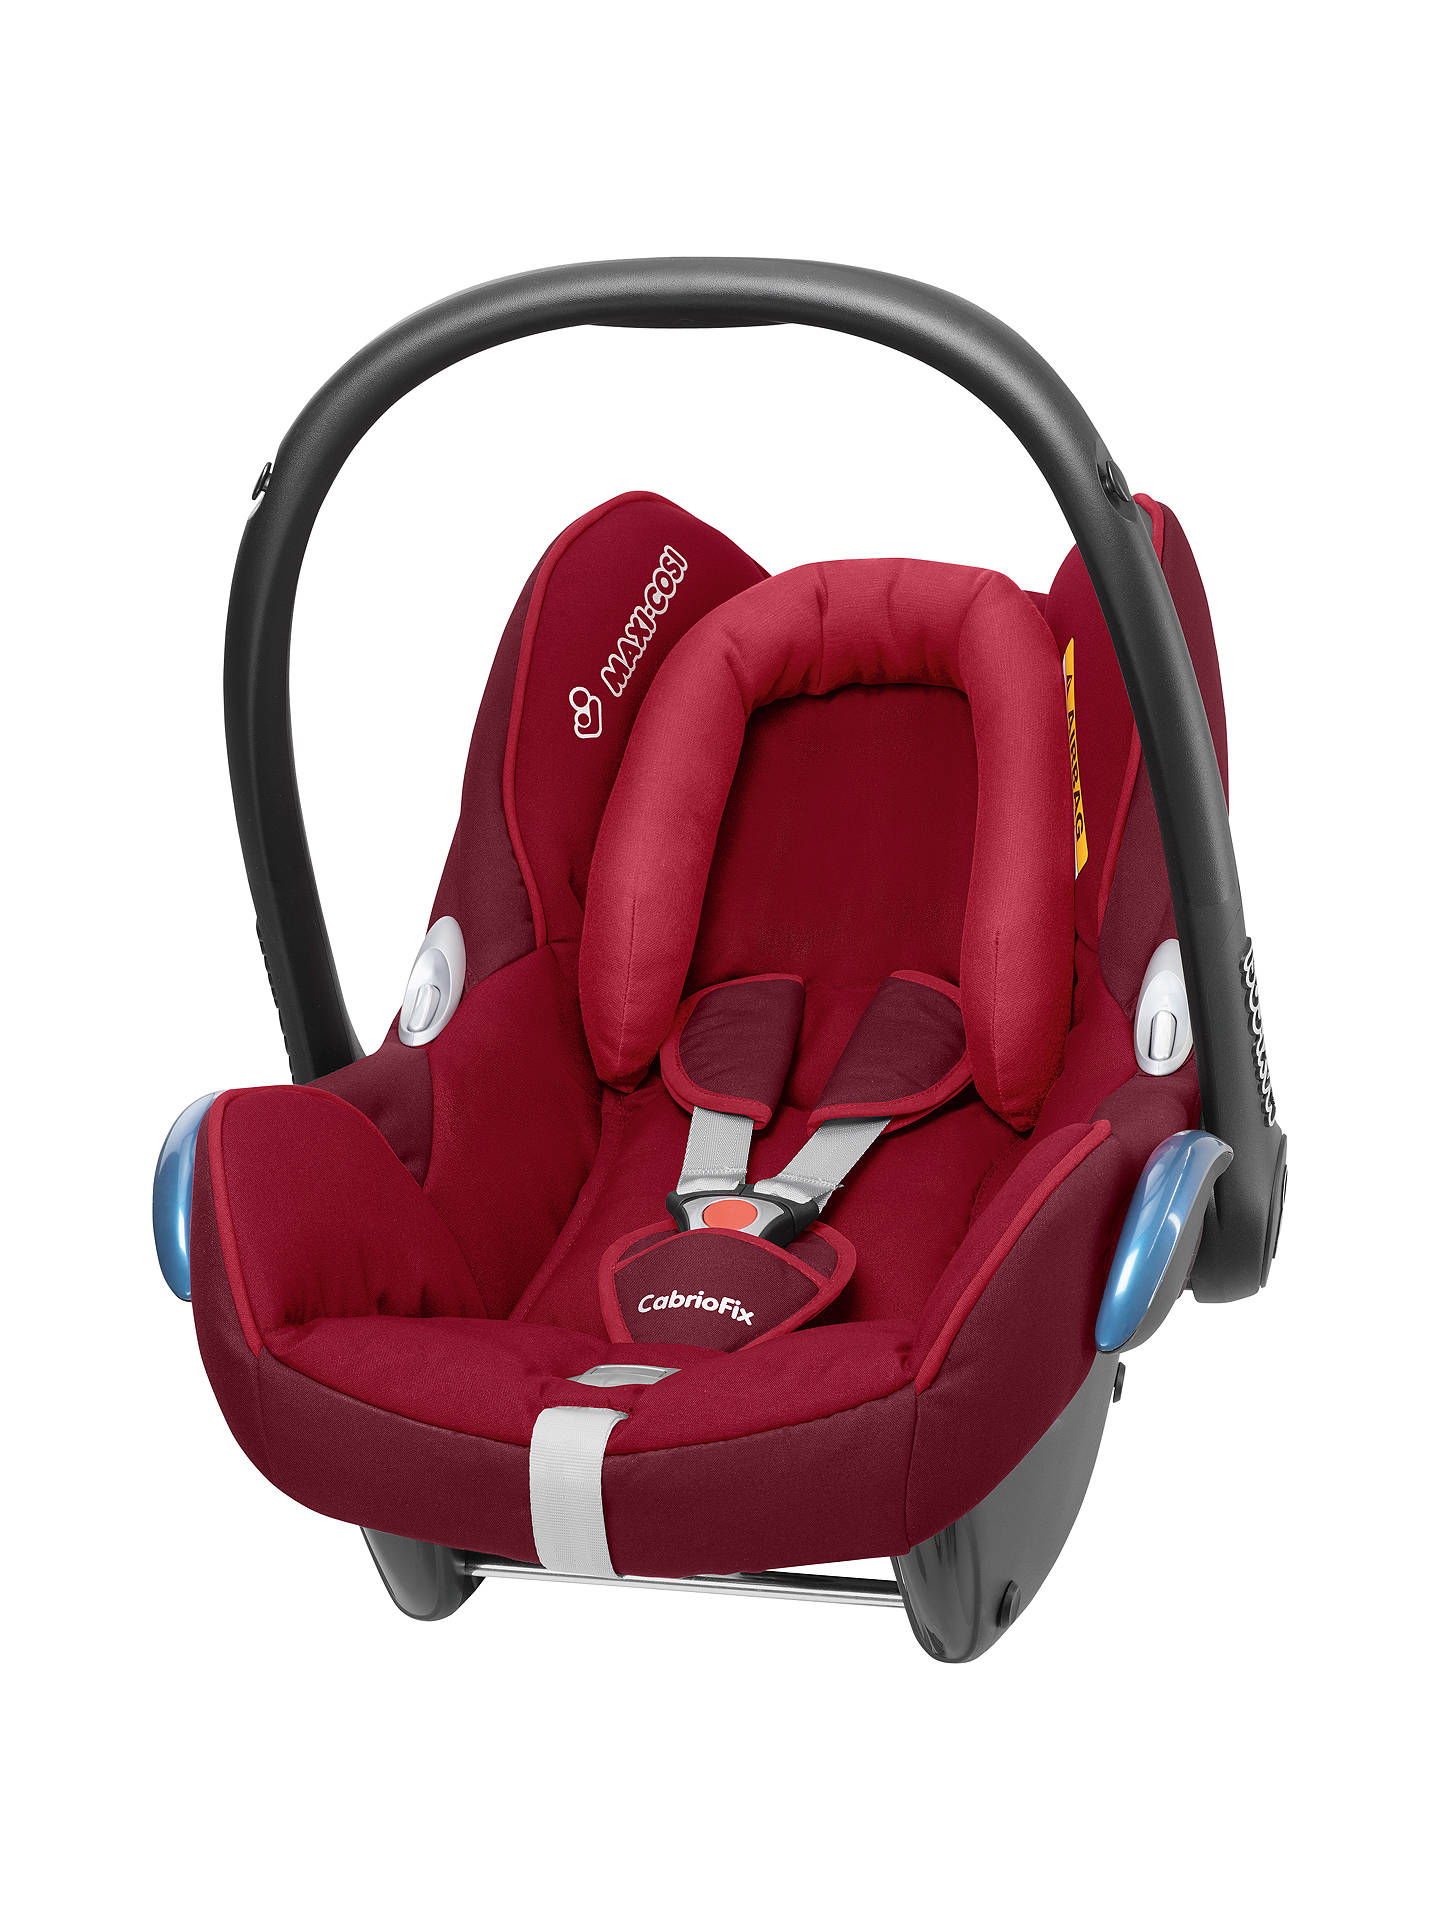 Maxi Cosi Cabriofix Infant Carrier Raspberry Red At John Lewis